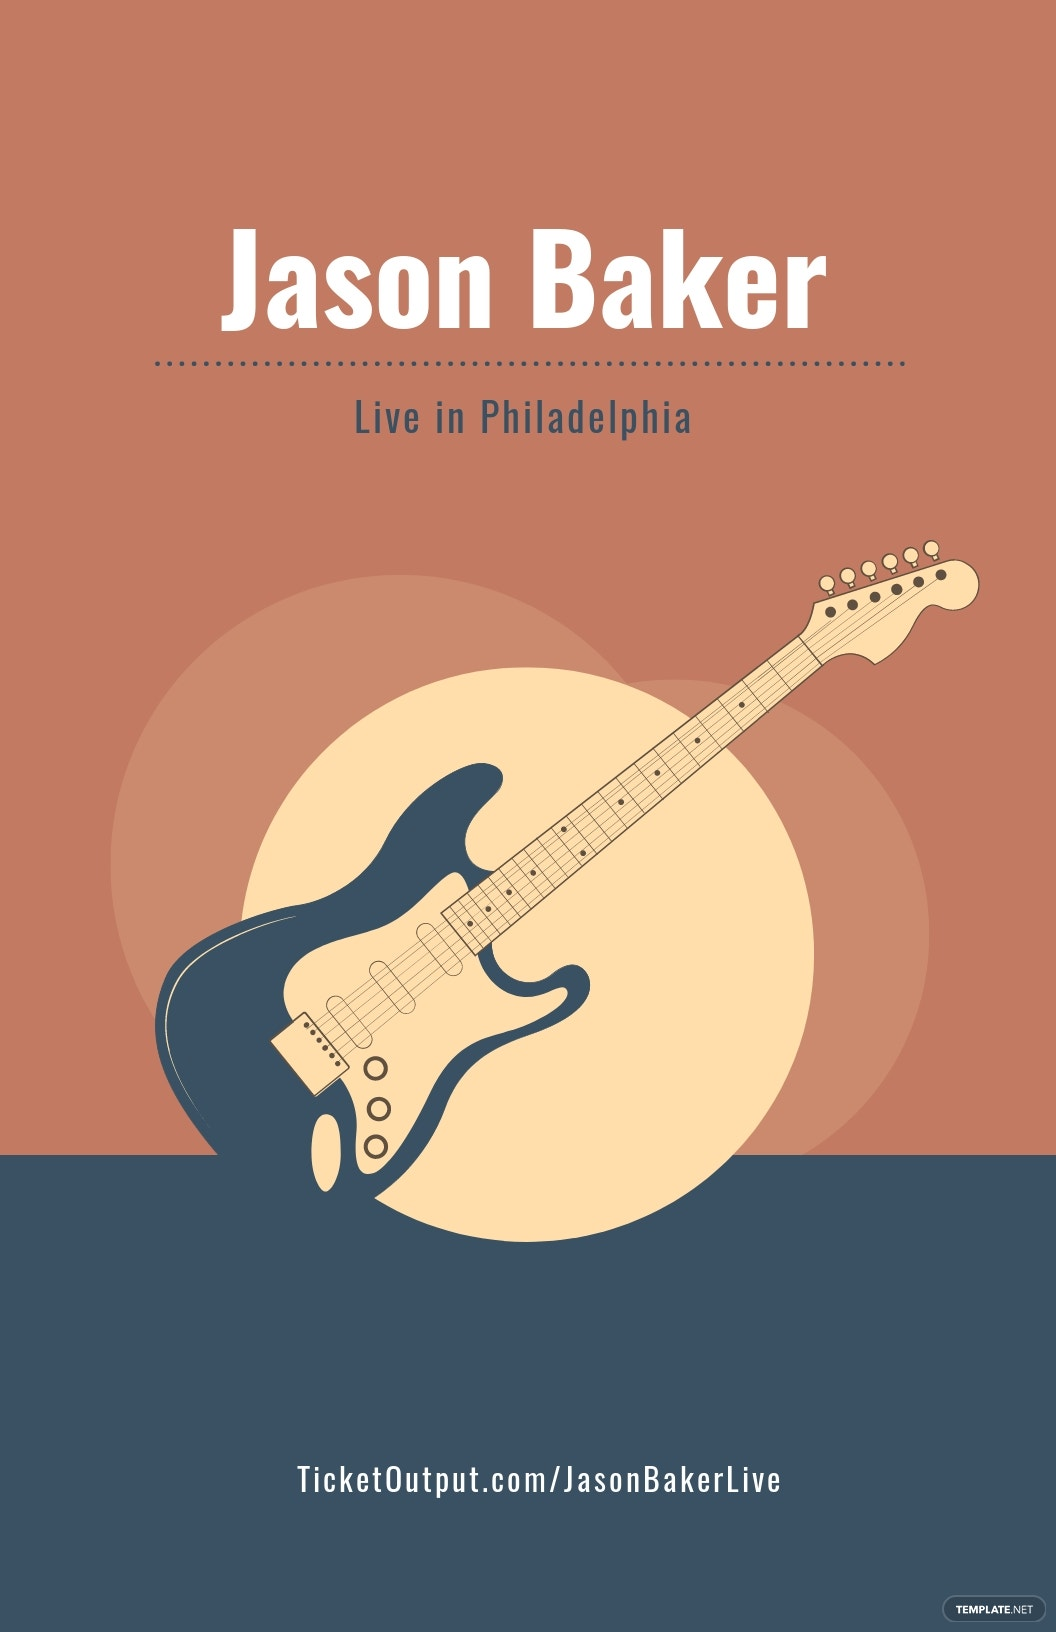 Free Live Music Concert Poster Template.jpe